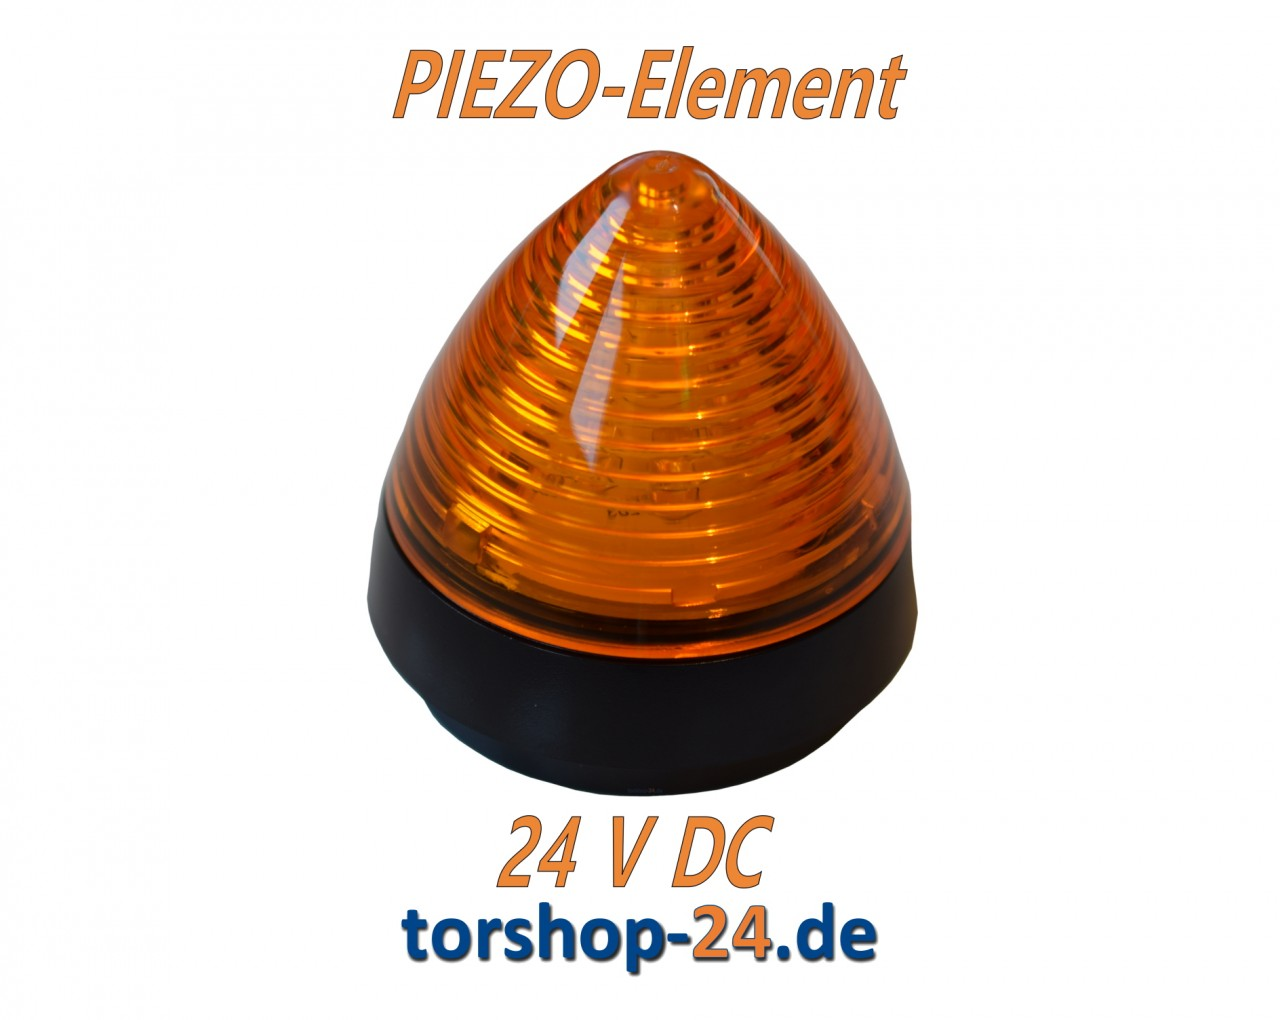 Hörmann LED Signalleuchte SLK 24 V Piezo-Element